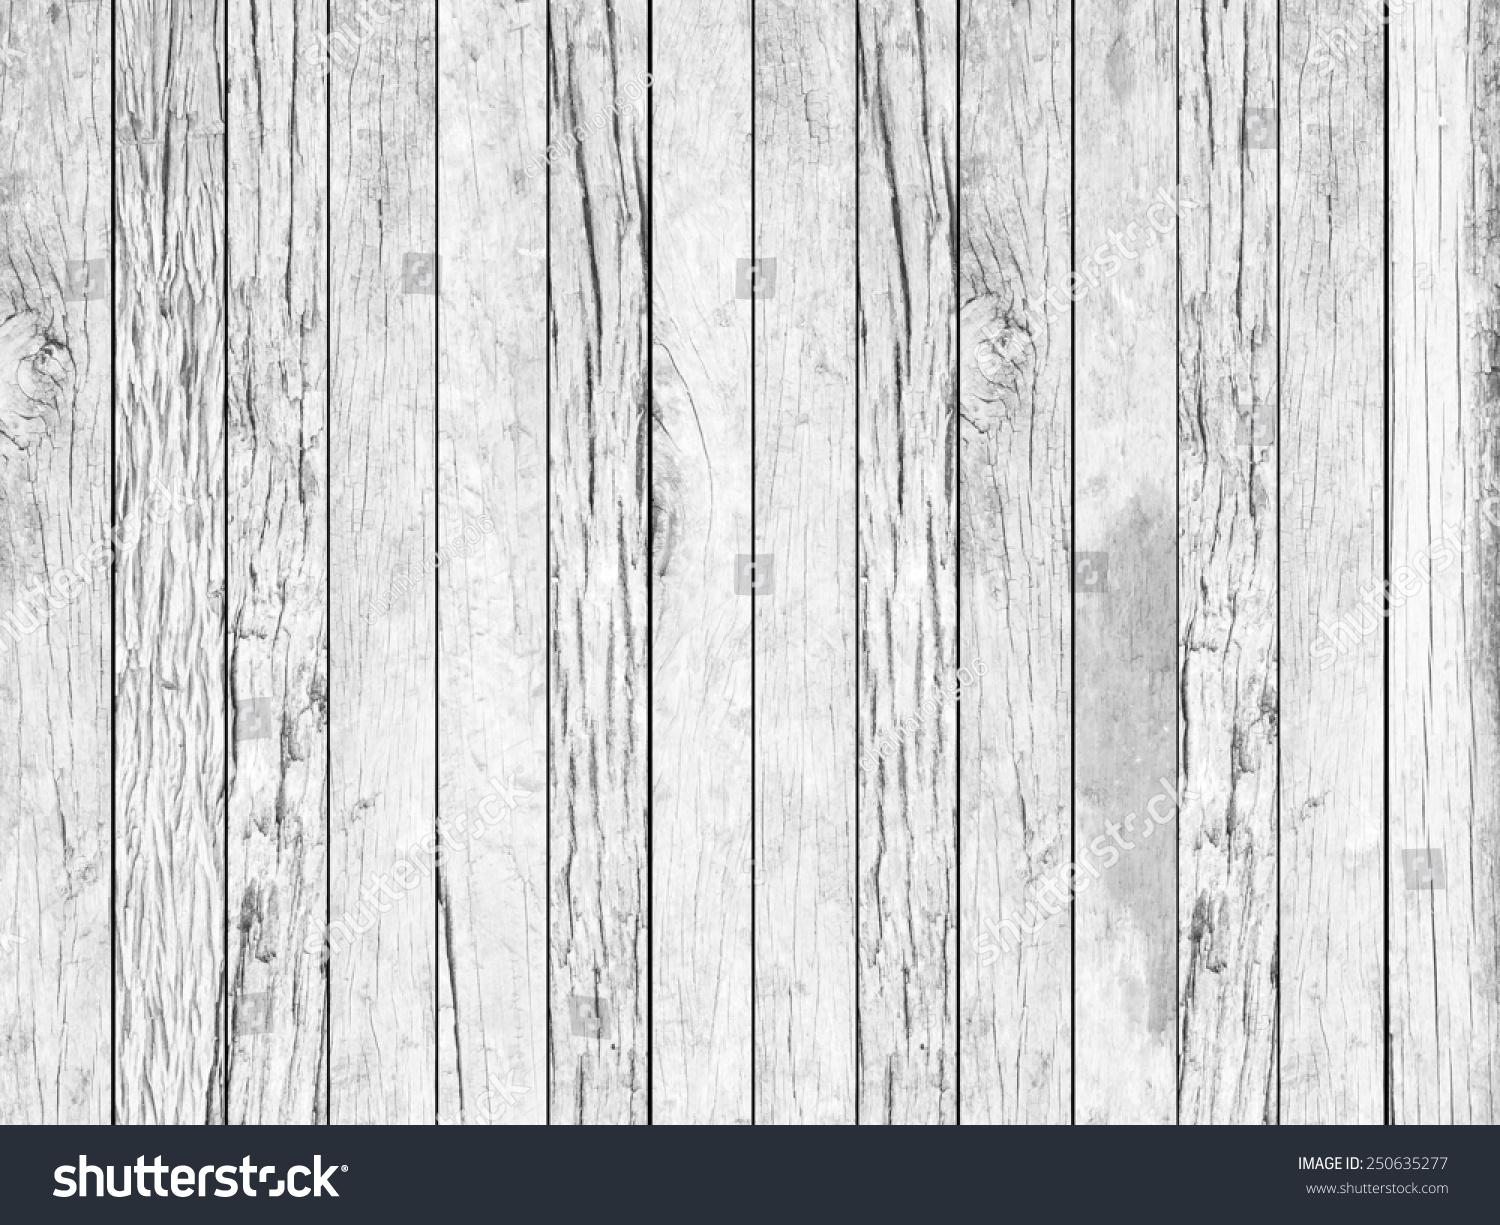 Royalty Free Vintage Aged White Grey Color Wooden 250635277 Stock